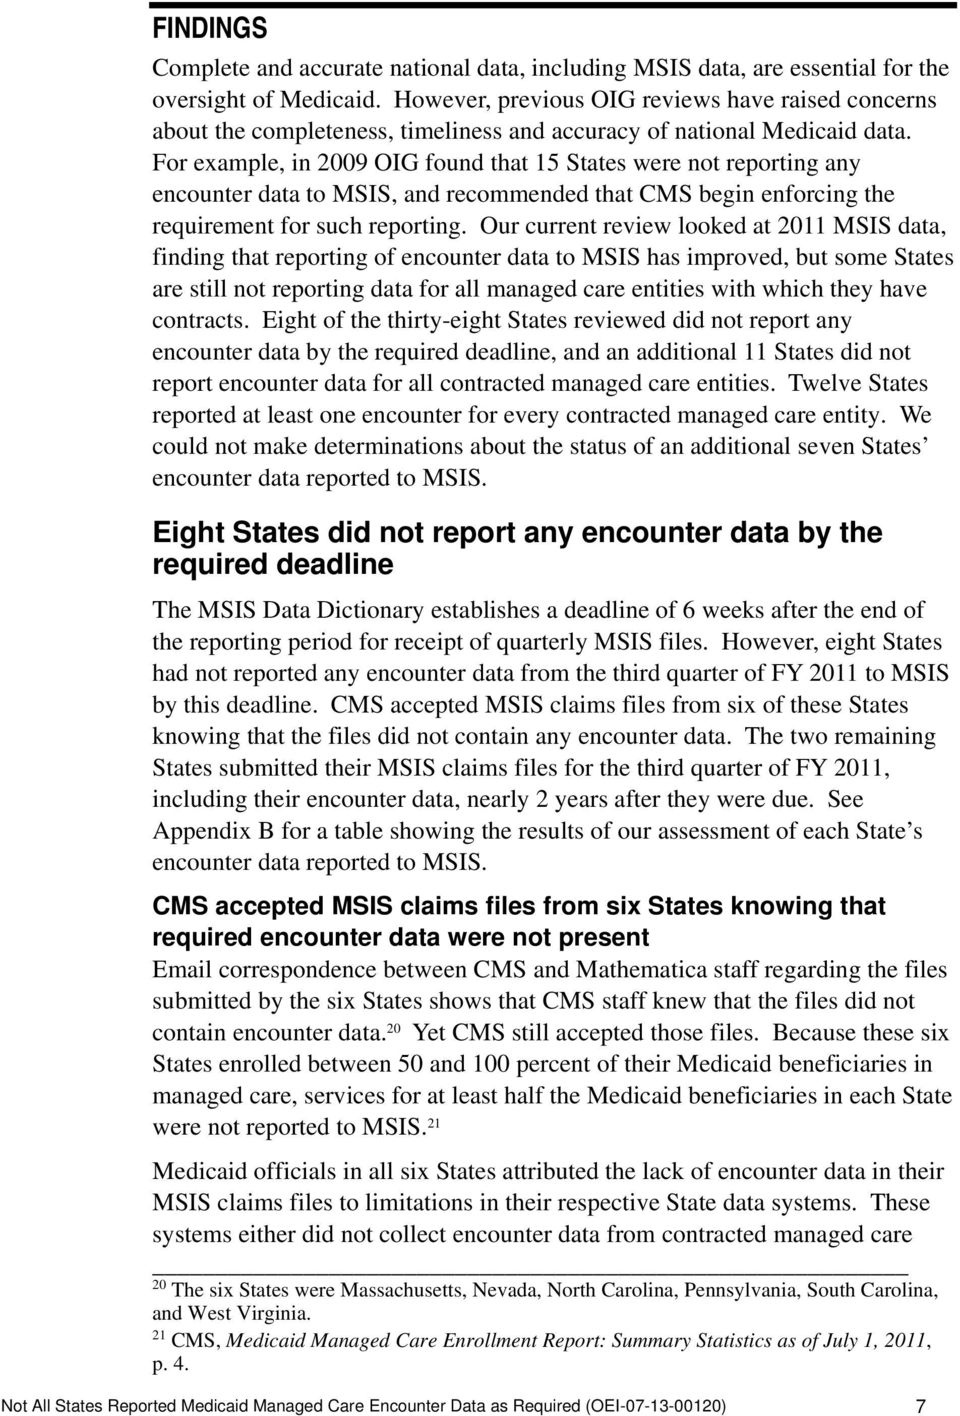 For example, in 2009 OIG found that 15 States were not reporting any encounter data to MSIS, and recommended that CMS begin enforcing the requirement for such reporting.